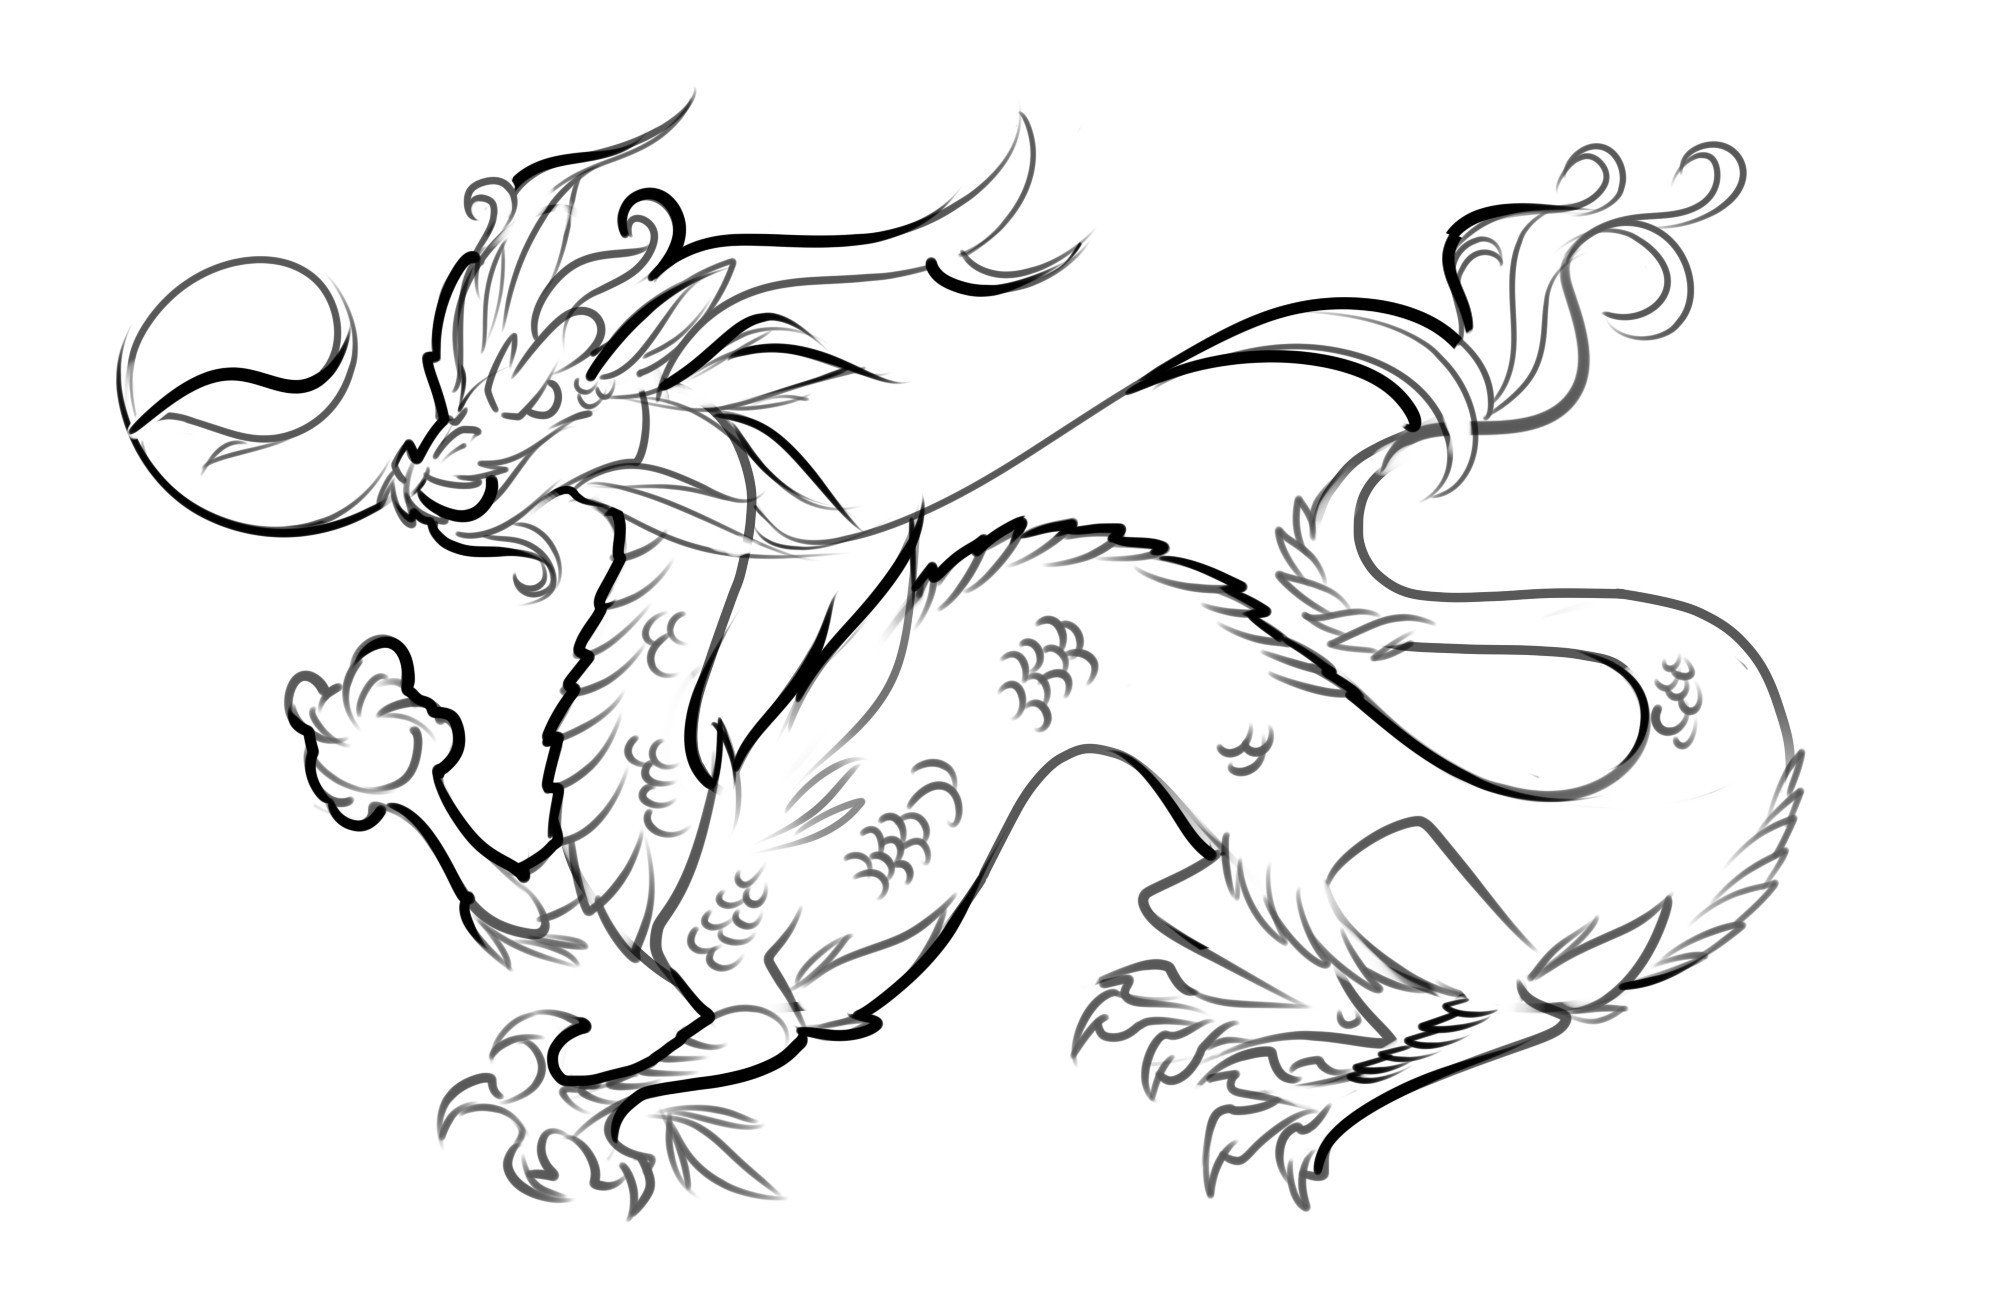 Coloring Pages Of Dragons Luxury Lovely Water Dragon Coloring Pages Cleanty Dragon Coloring Page Dragon Pictures Monster Coloring Pages